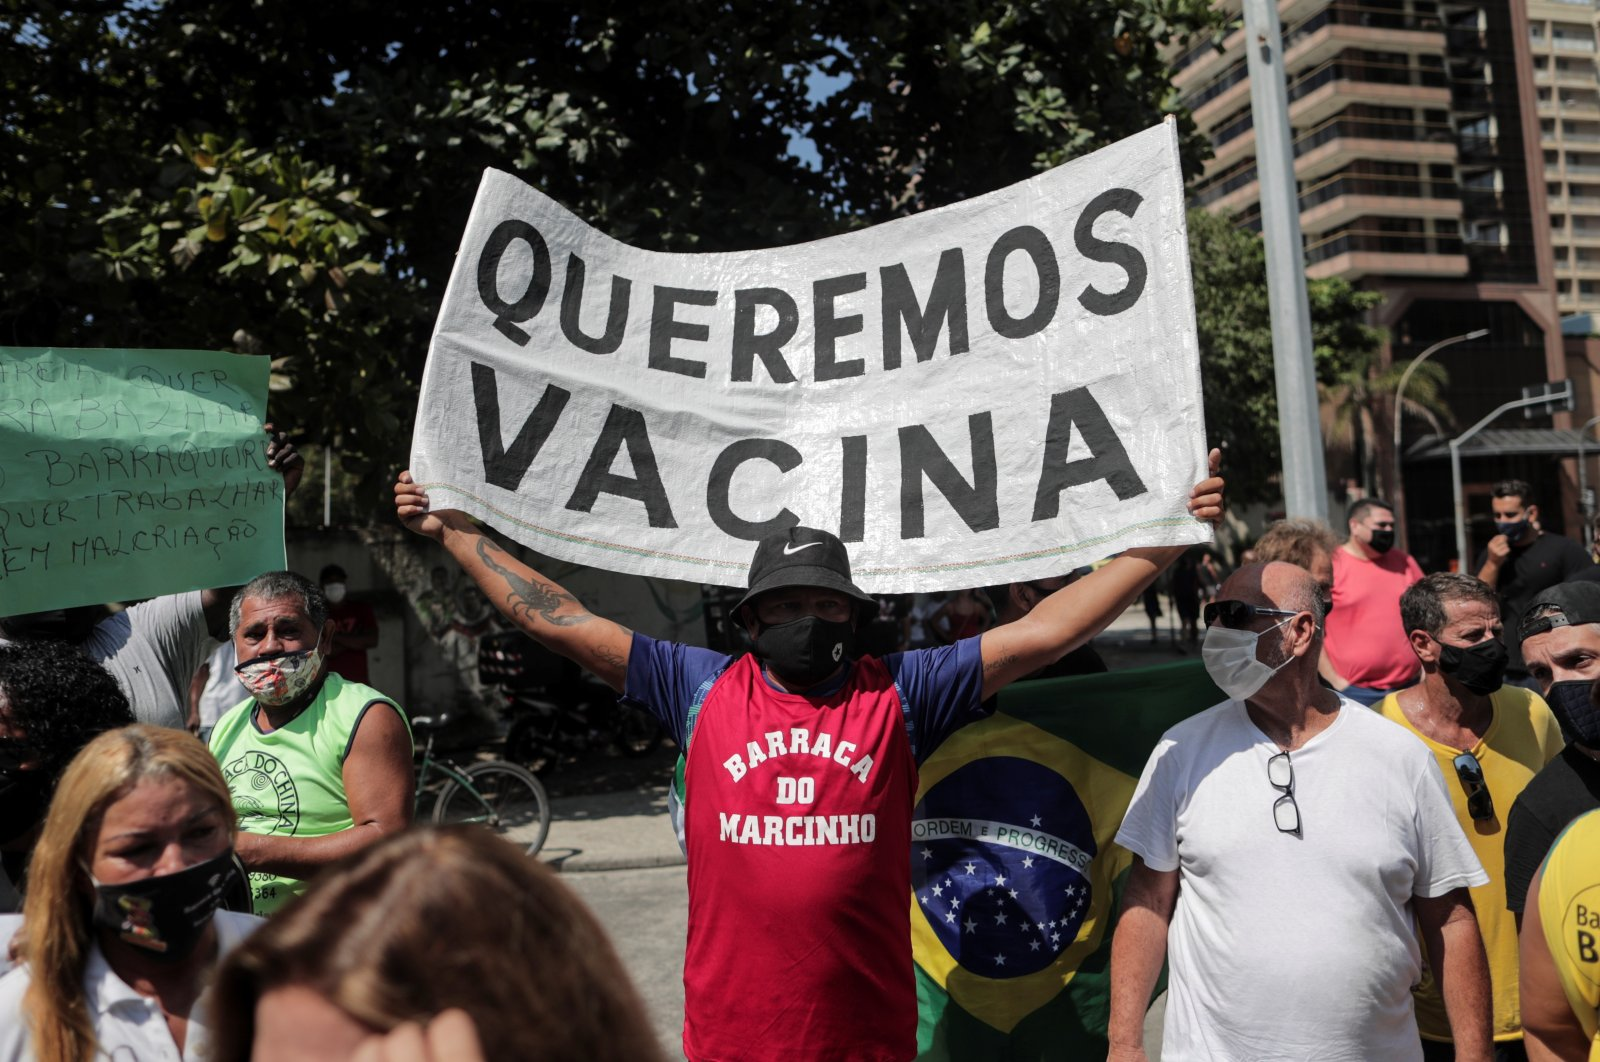 A man holds up a banner calling for a vaccine against COVID-19 during protests against the new measures implemented to stop its spread, on the beach of Copacabana, in Rio de Janeiro, Brazil, March 26, 2021.  (EPA Photo)